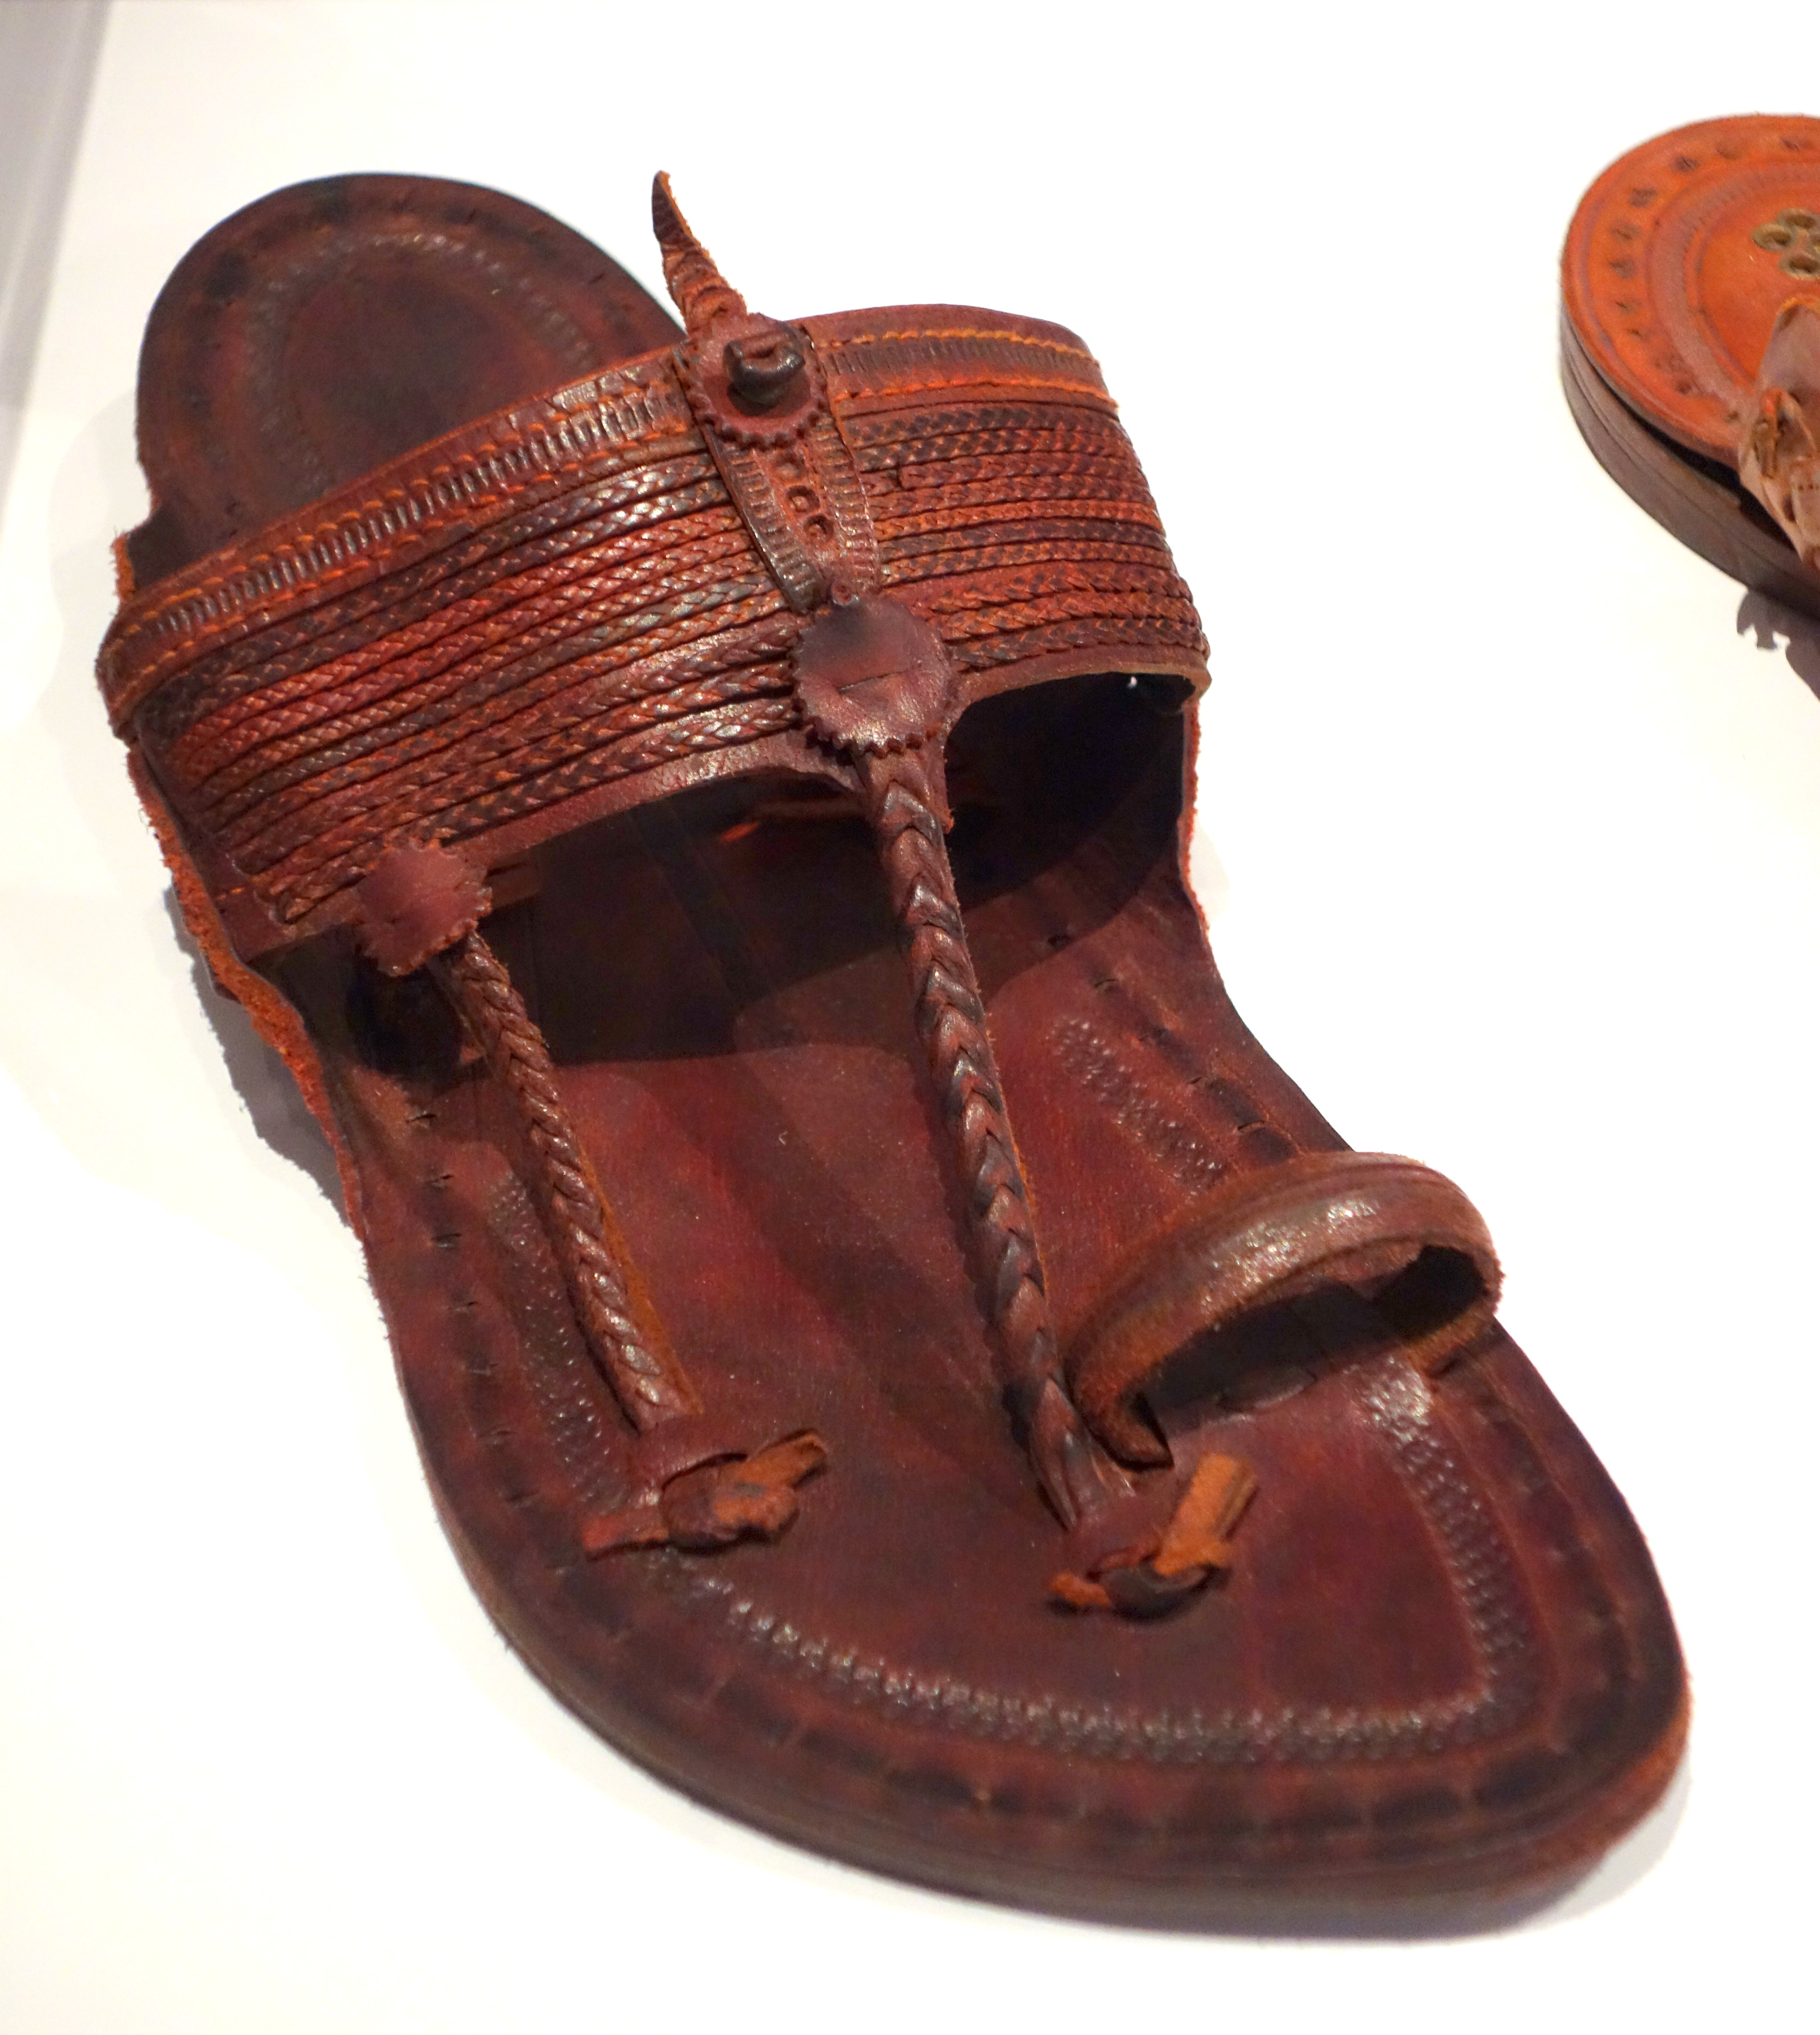 Size Shoe In India